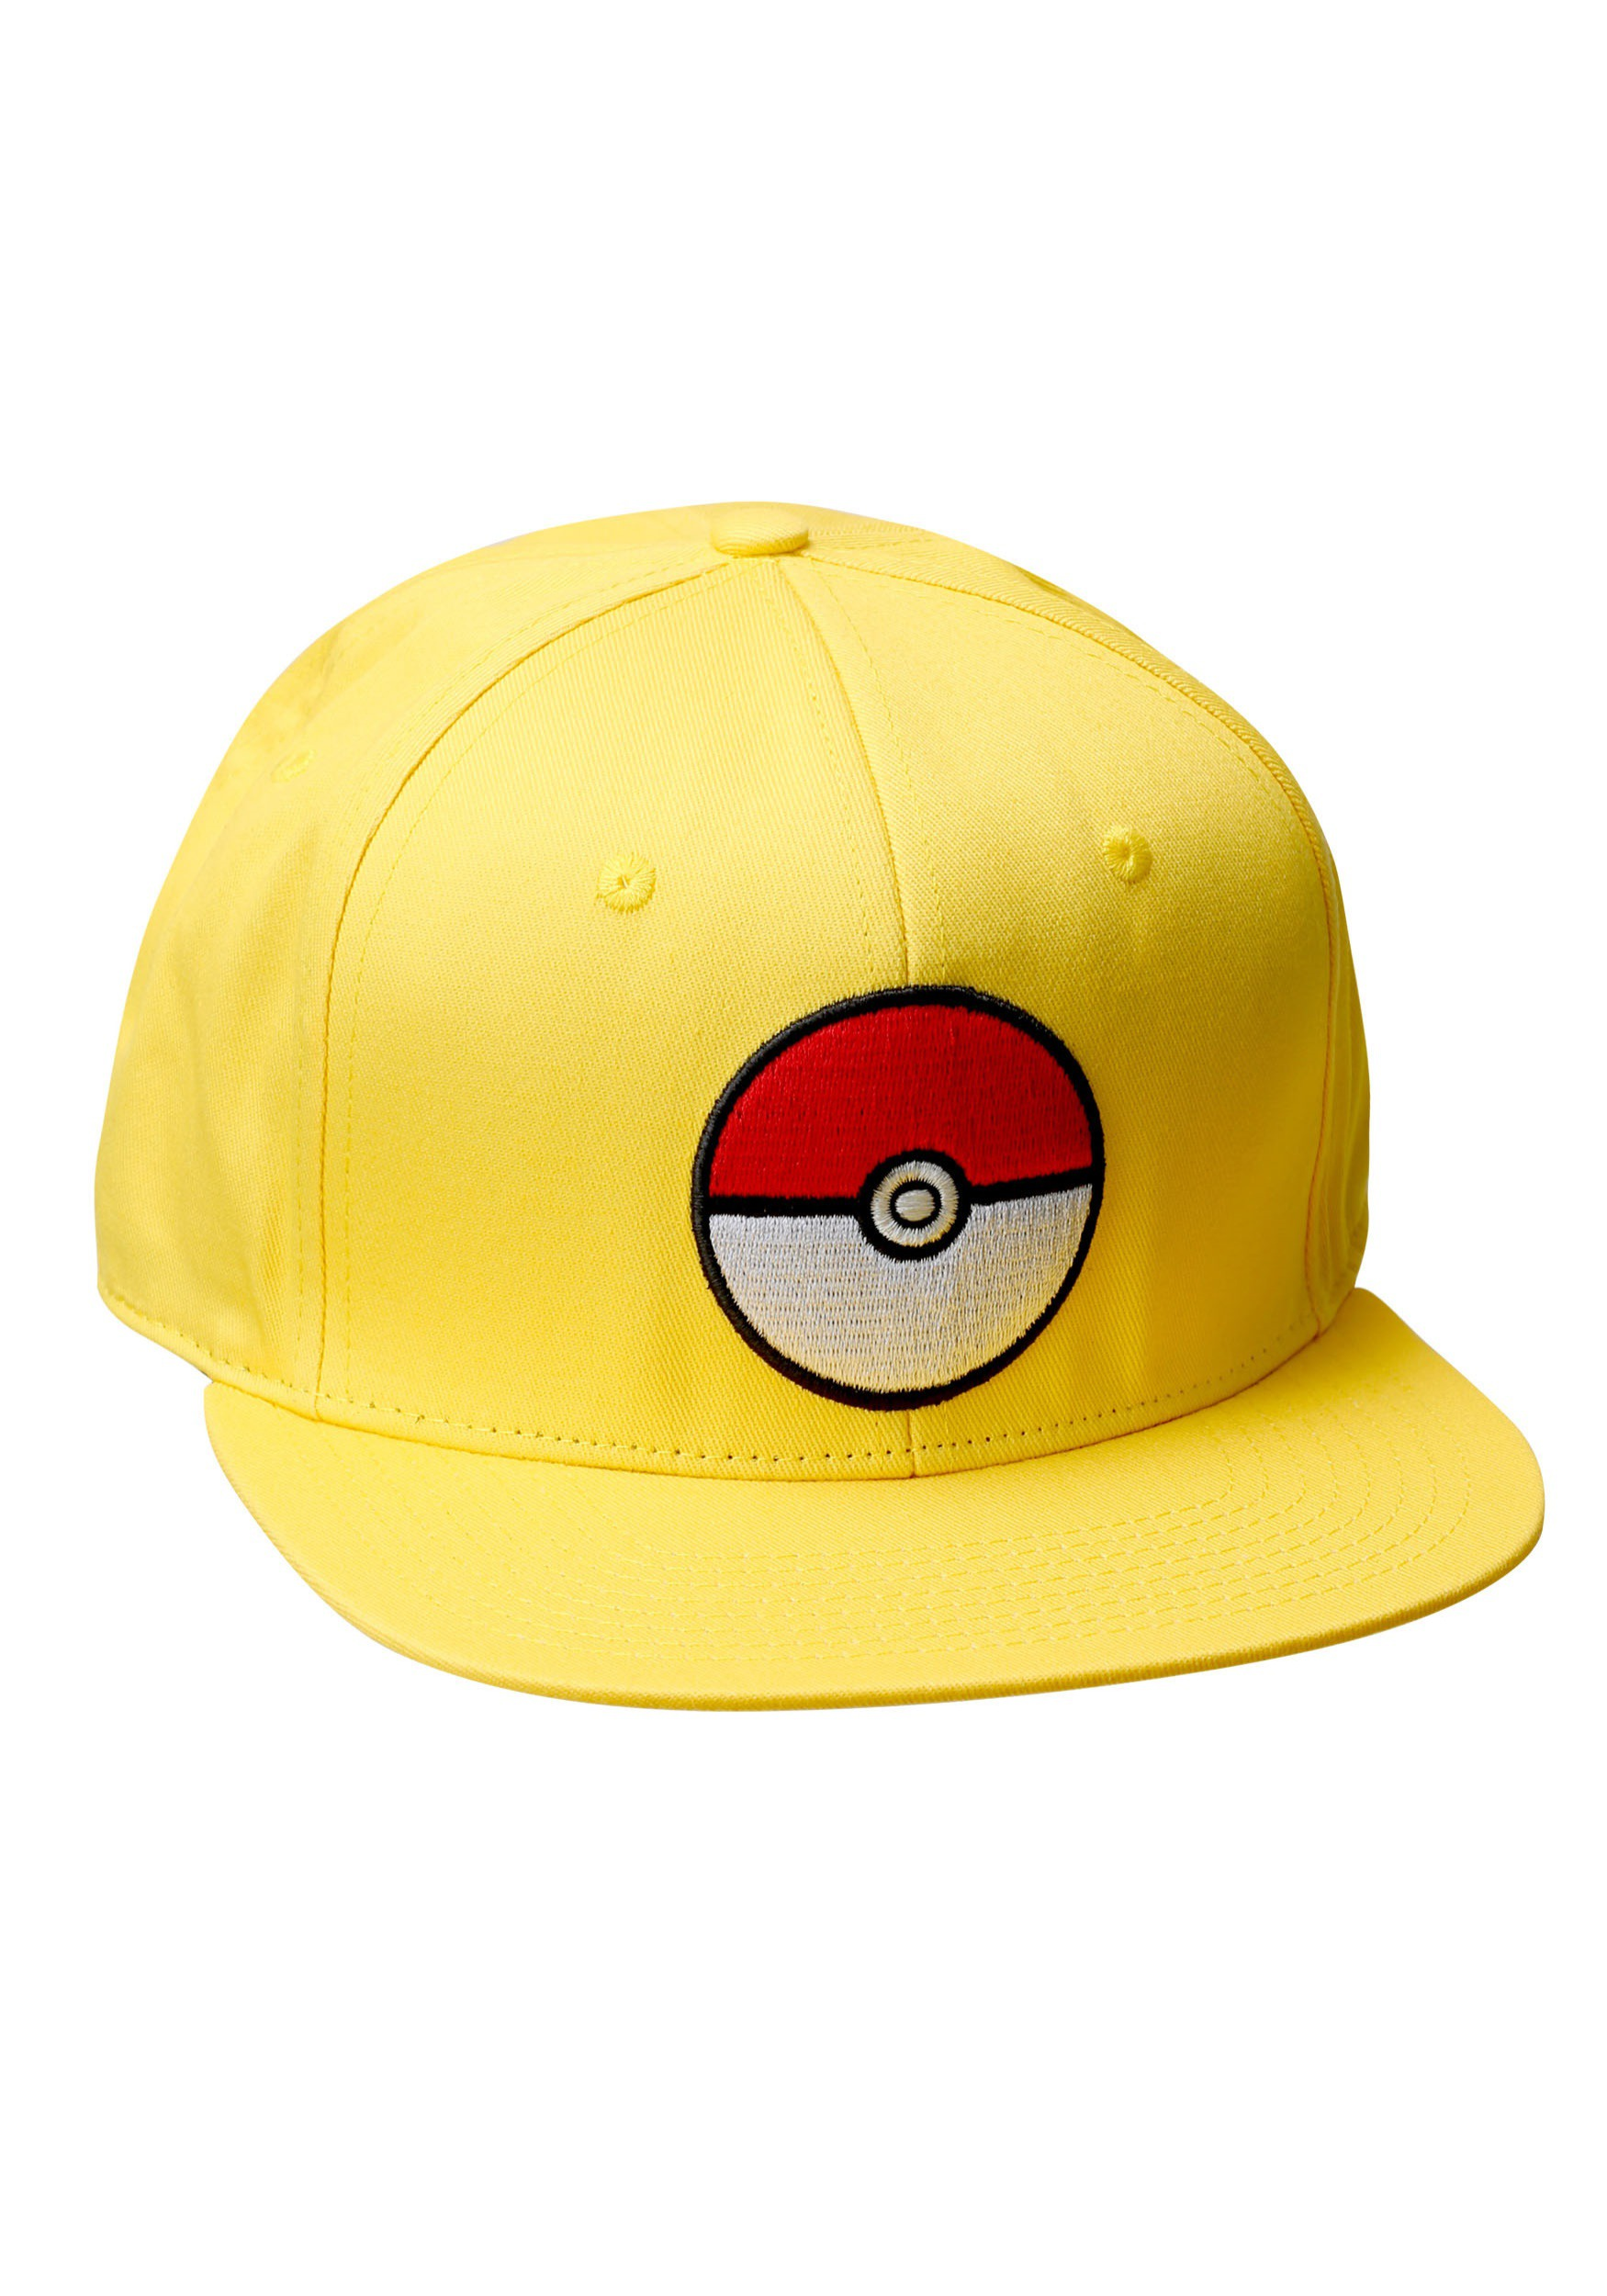 pokemon-pokeball-trainer-yellow-snapback-hat-.jpg 85c63752d1e1